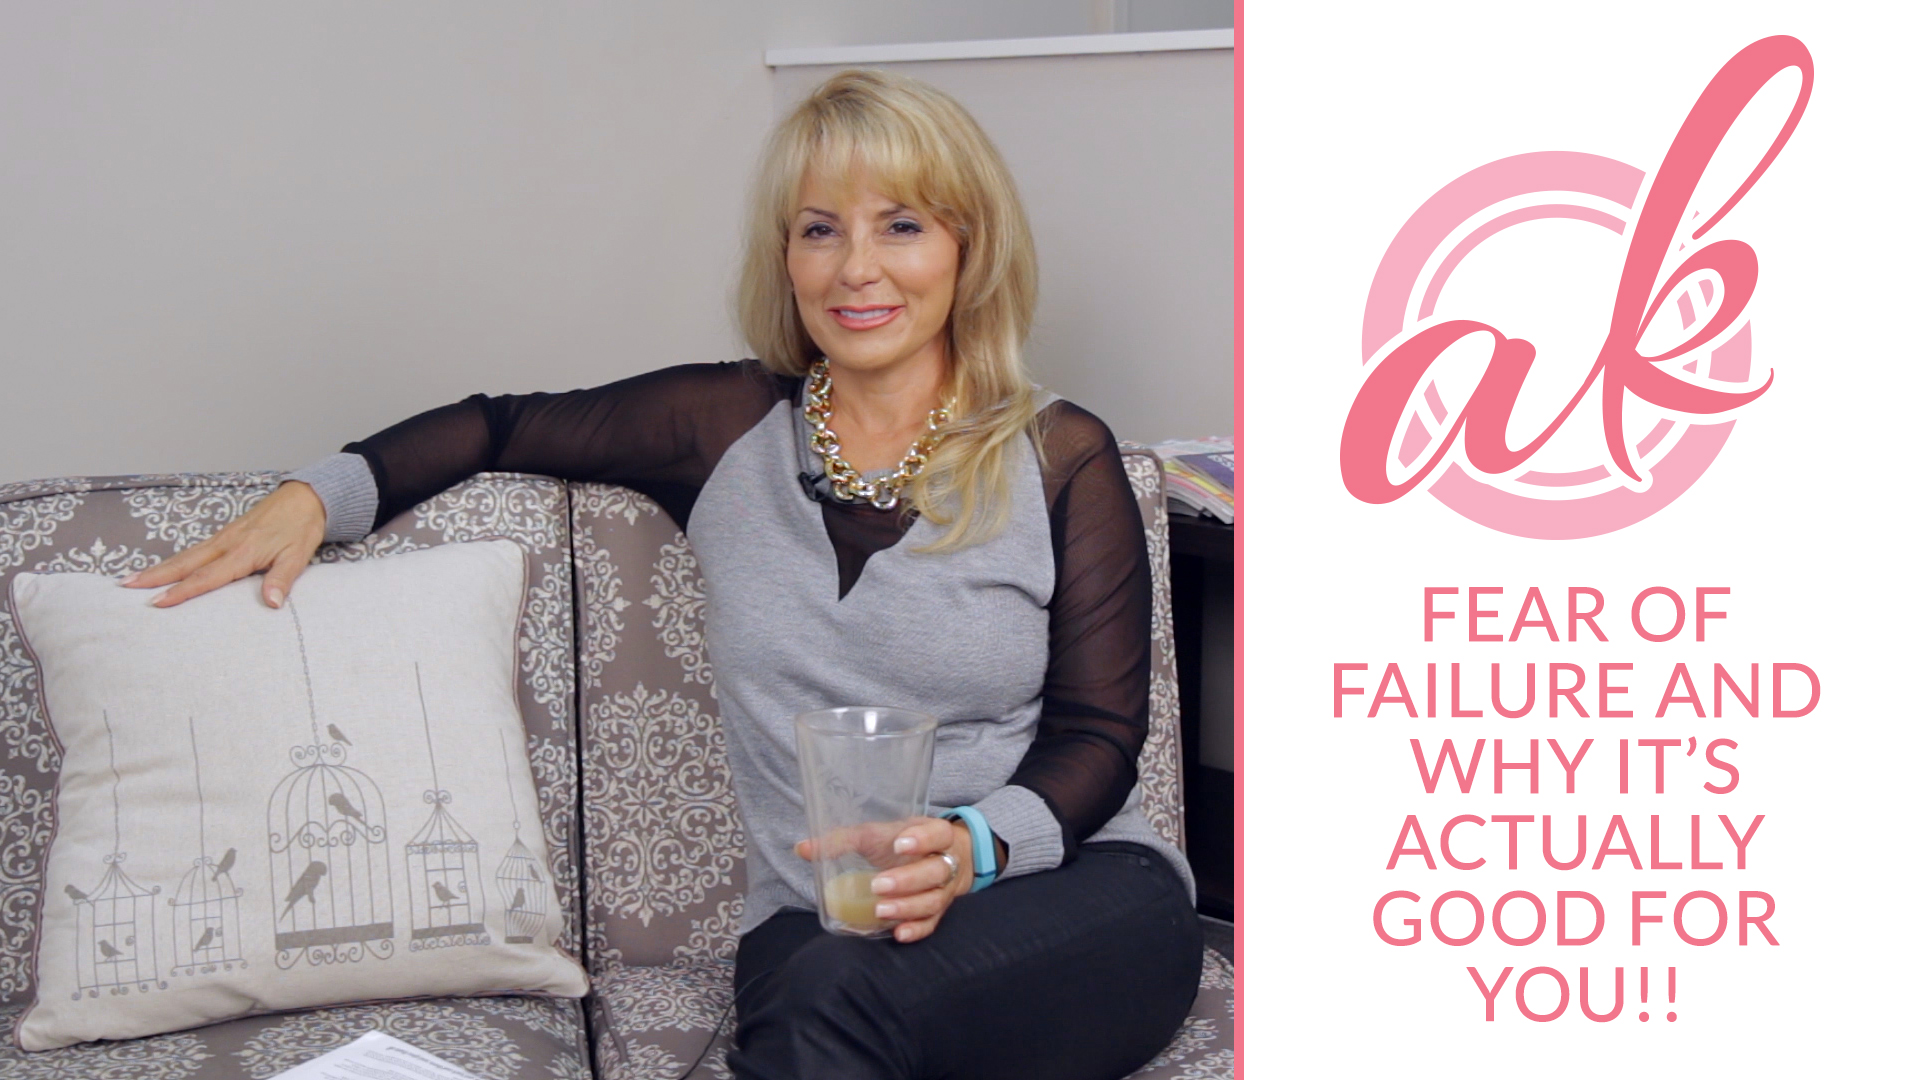 Episode 2 – Fear of Failure and Why it's Actually Good for You!!